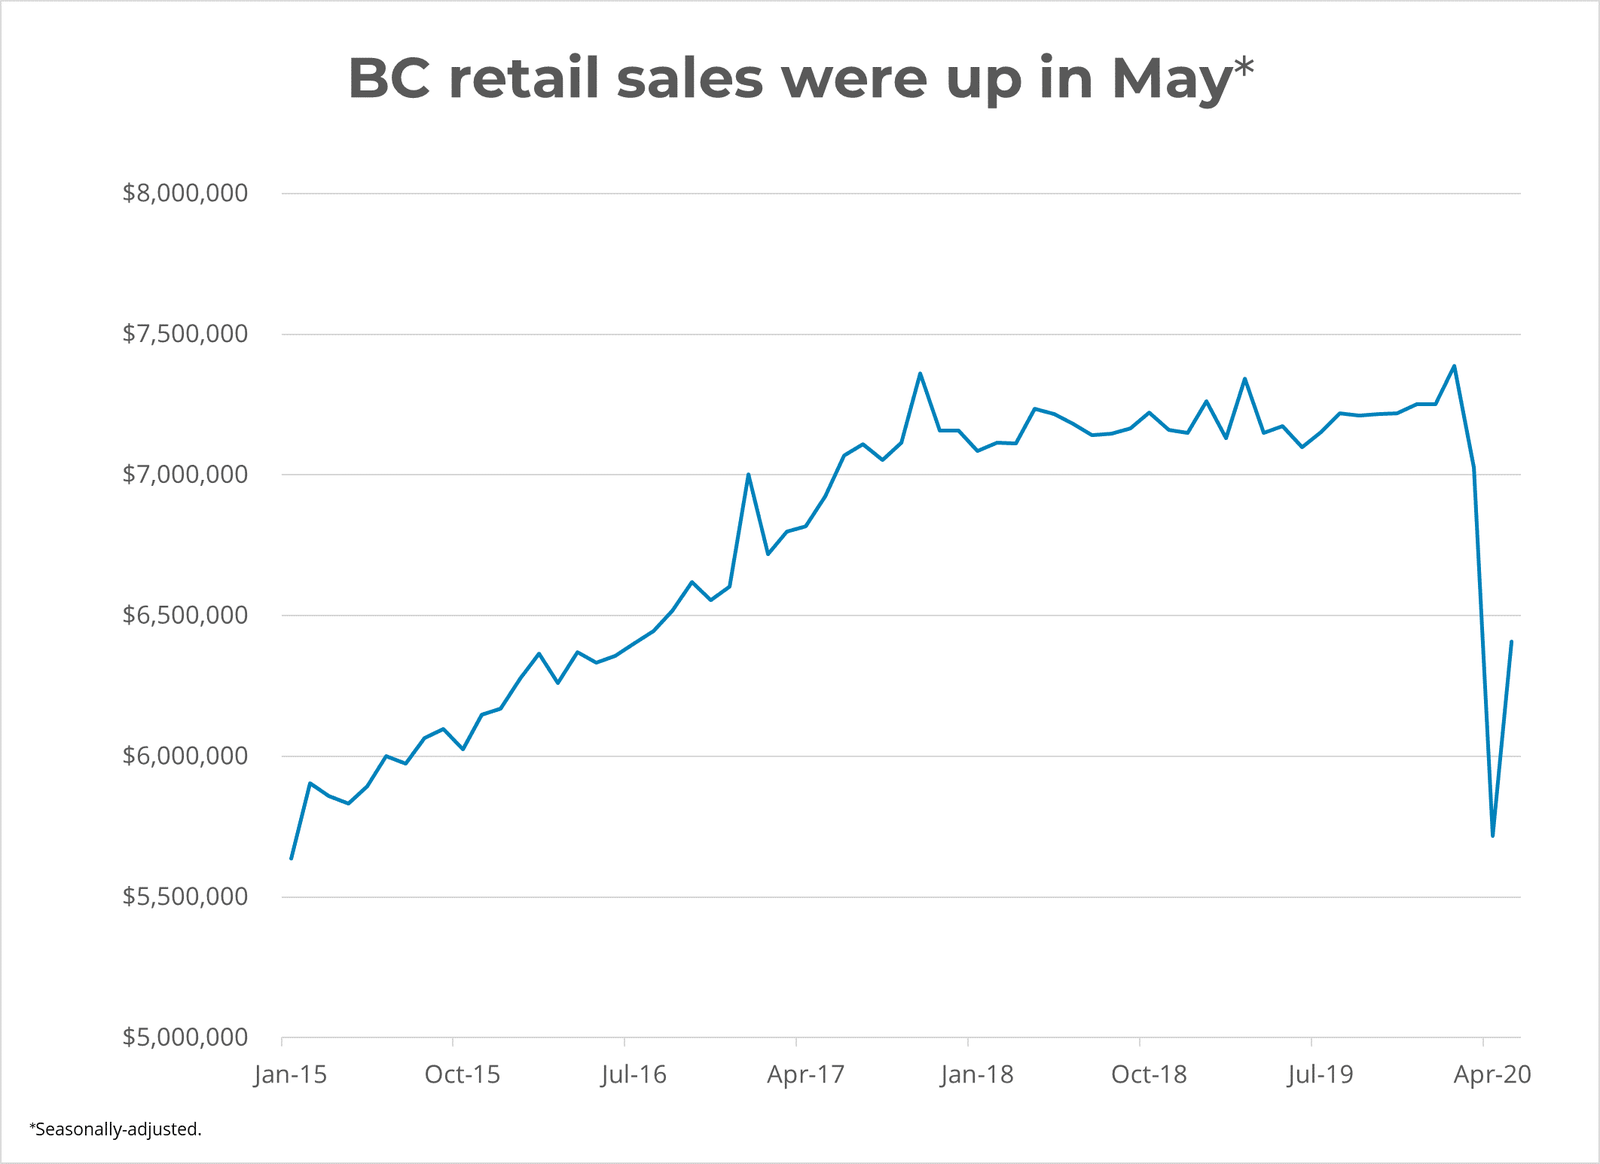 BC Retail Sales up in May 2020